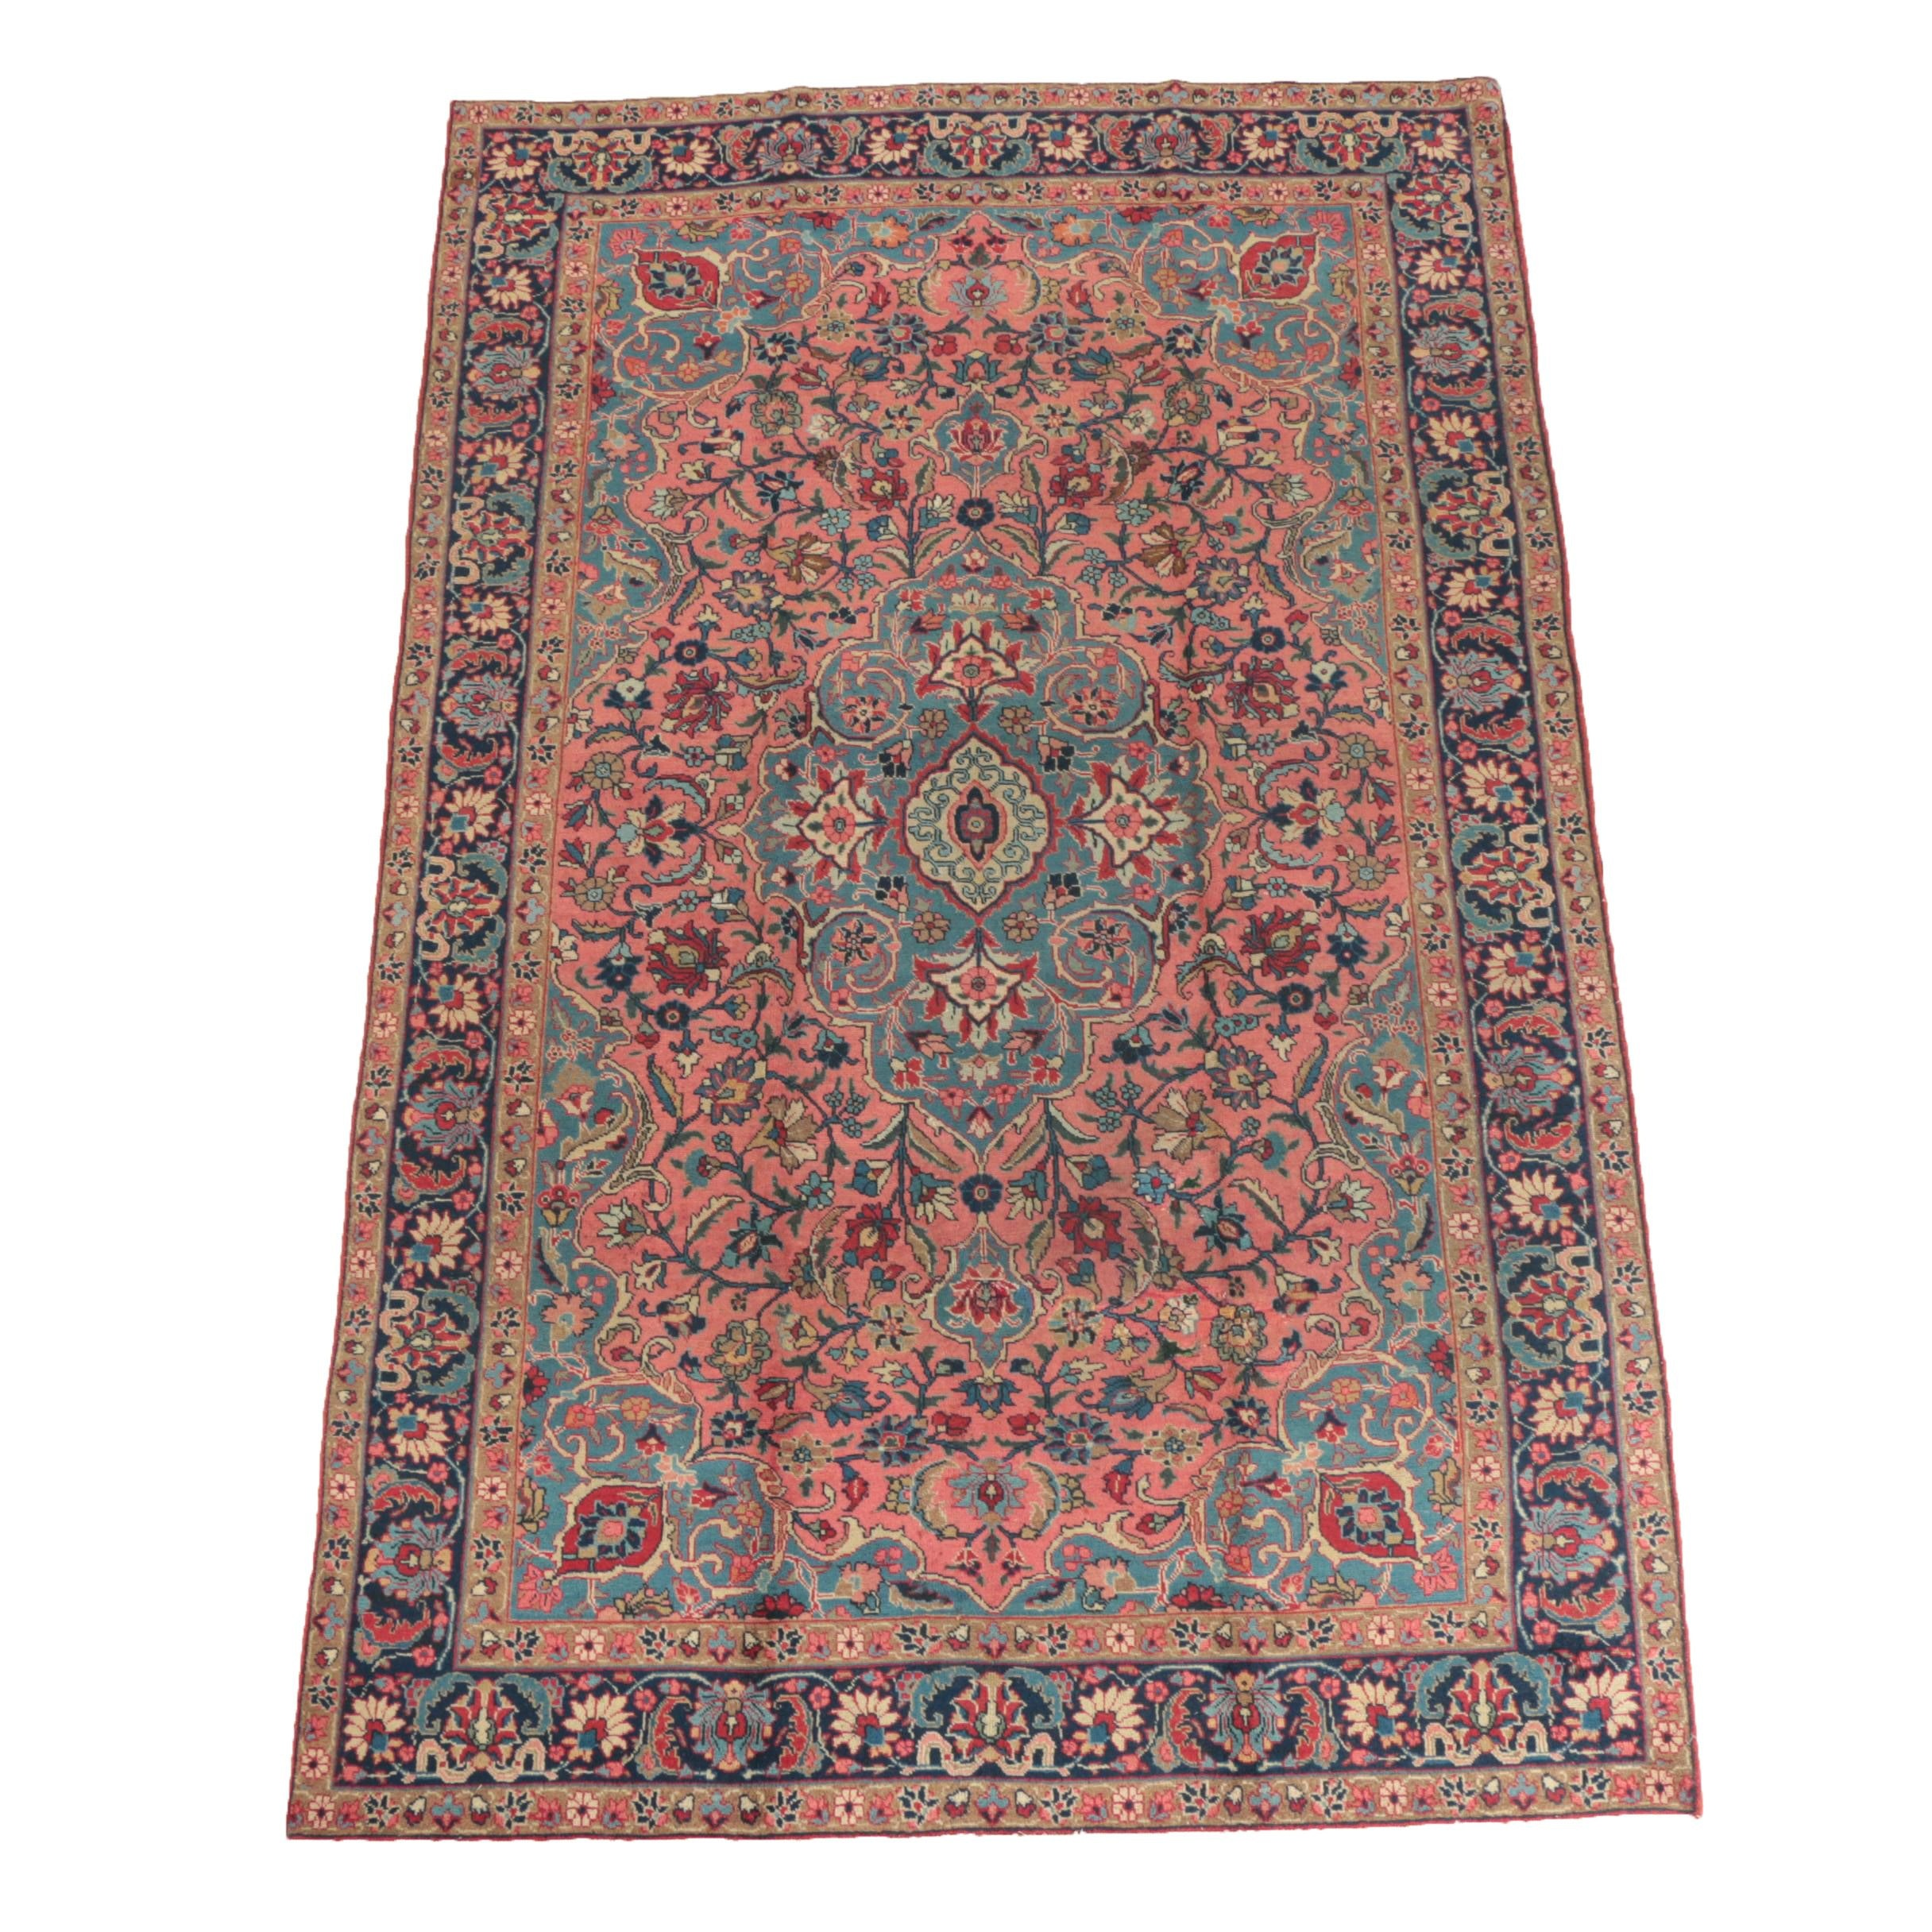 Hand-Knotted Sarouk-Style Wool Area Rug